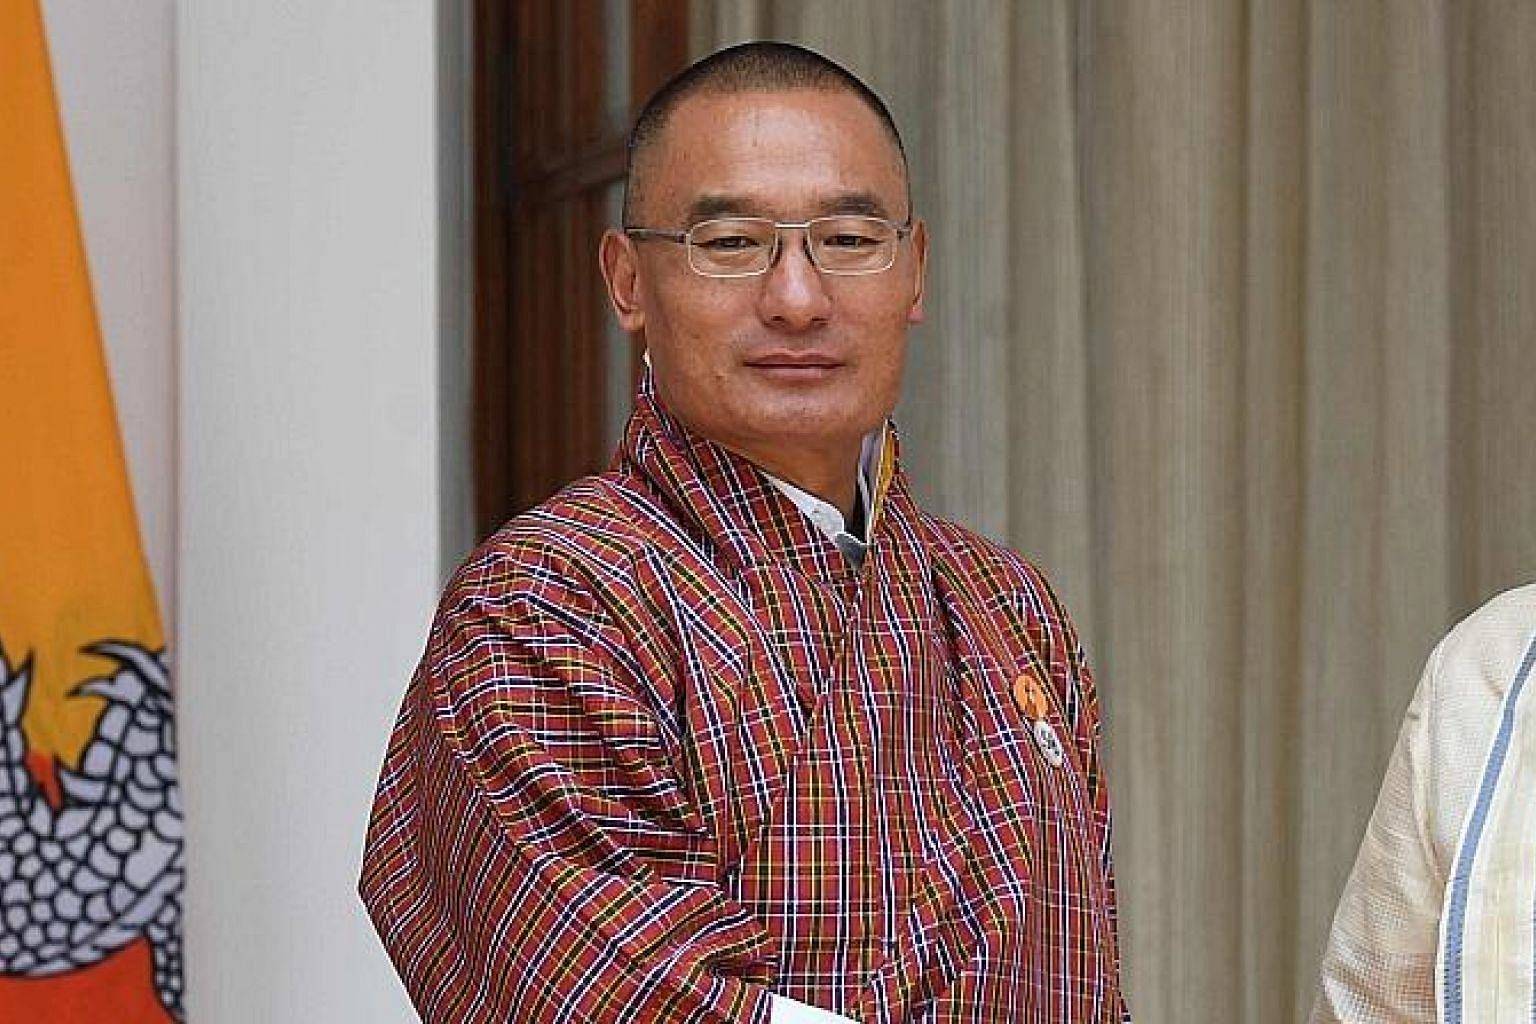 Bhutan Prime Minister Tshering Tobgay was seeking a second term, but has conceded defeat.